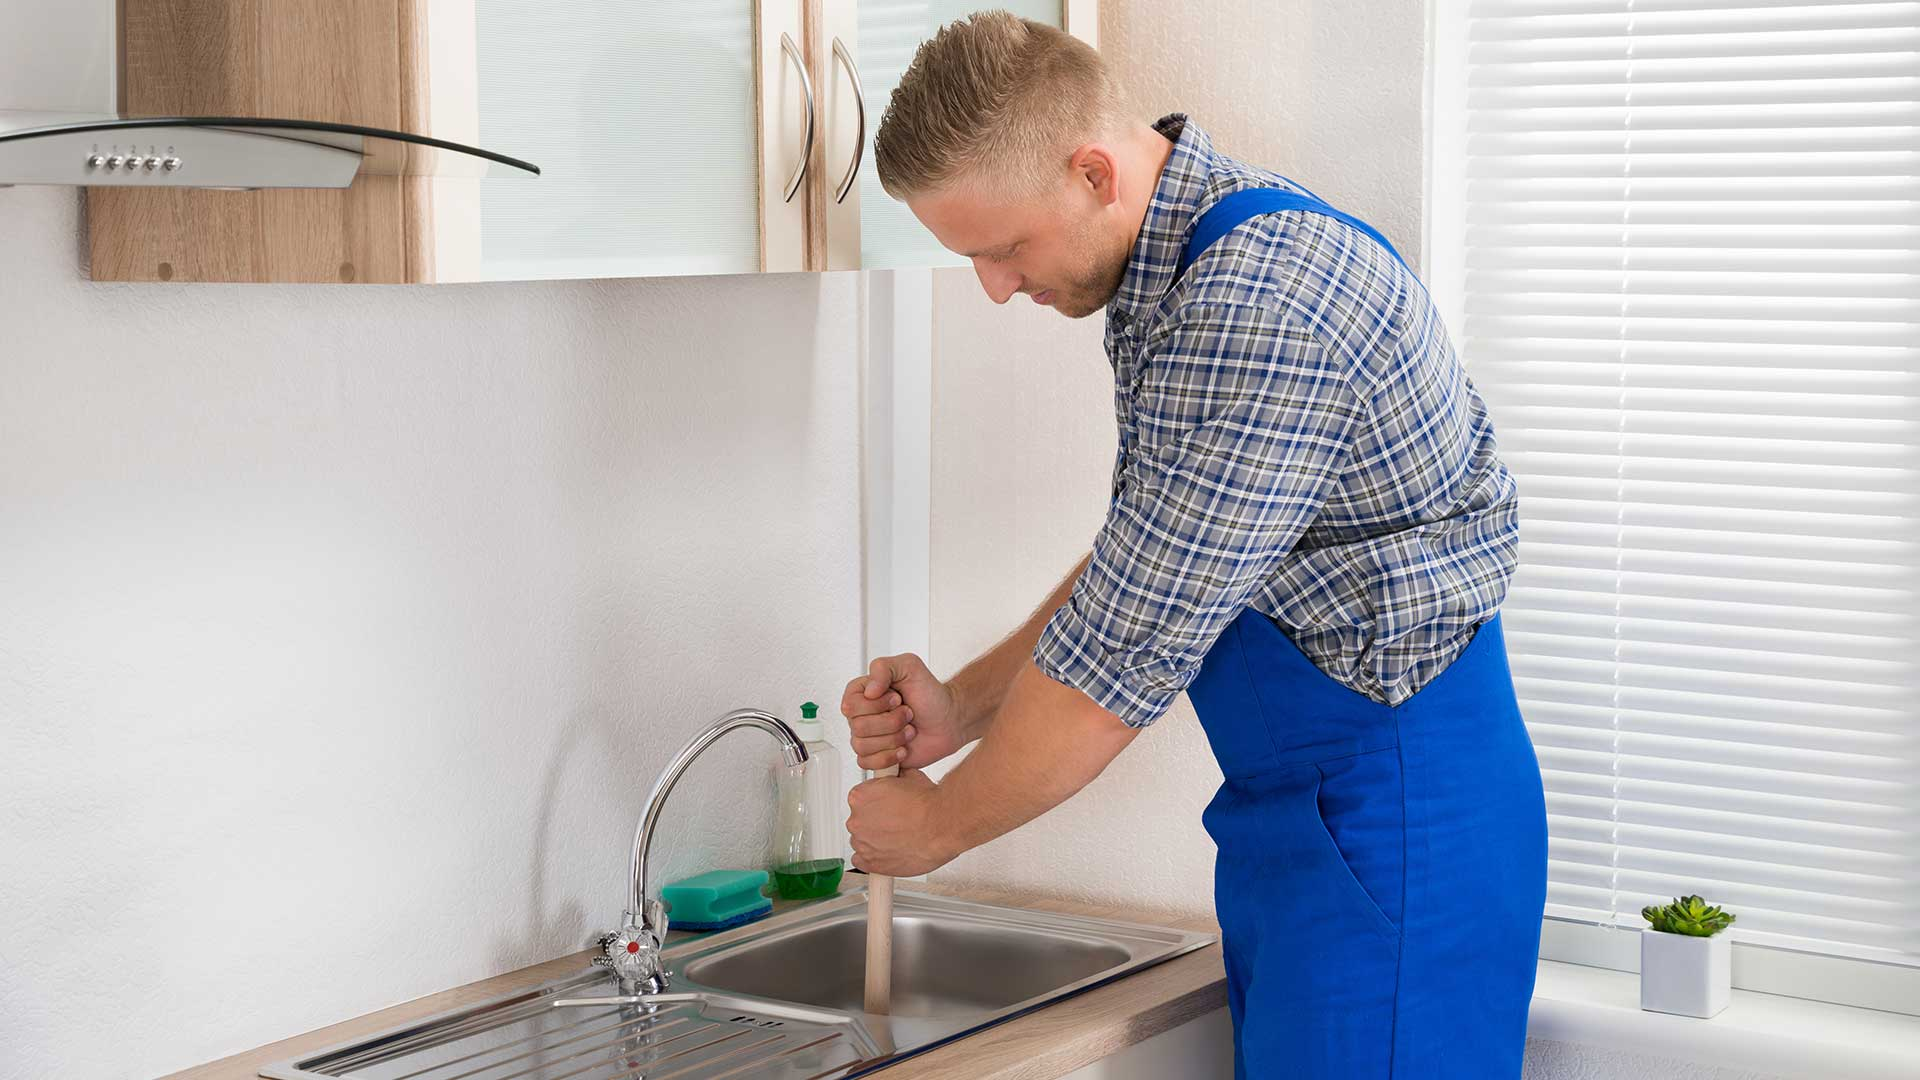 With-so-many-causes-of-clogged-drains-its-common-to-have-to-call-a-plumber-for-help